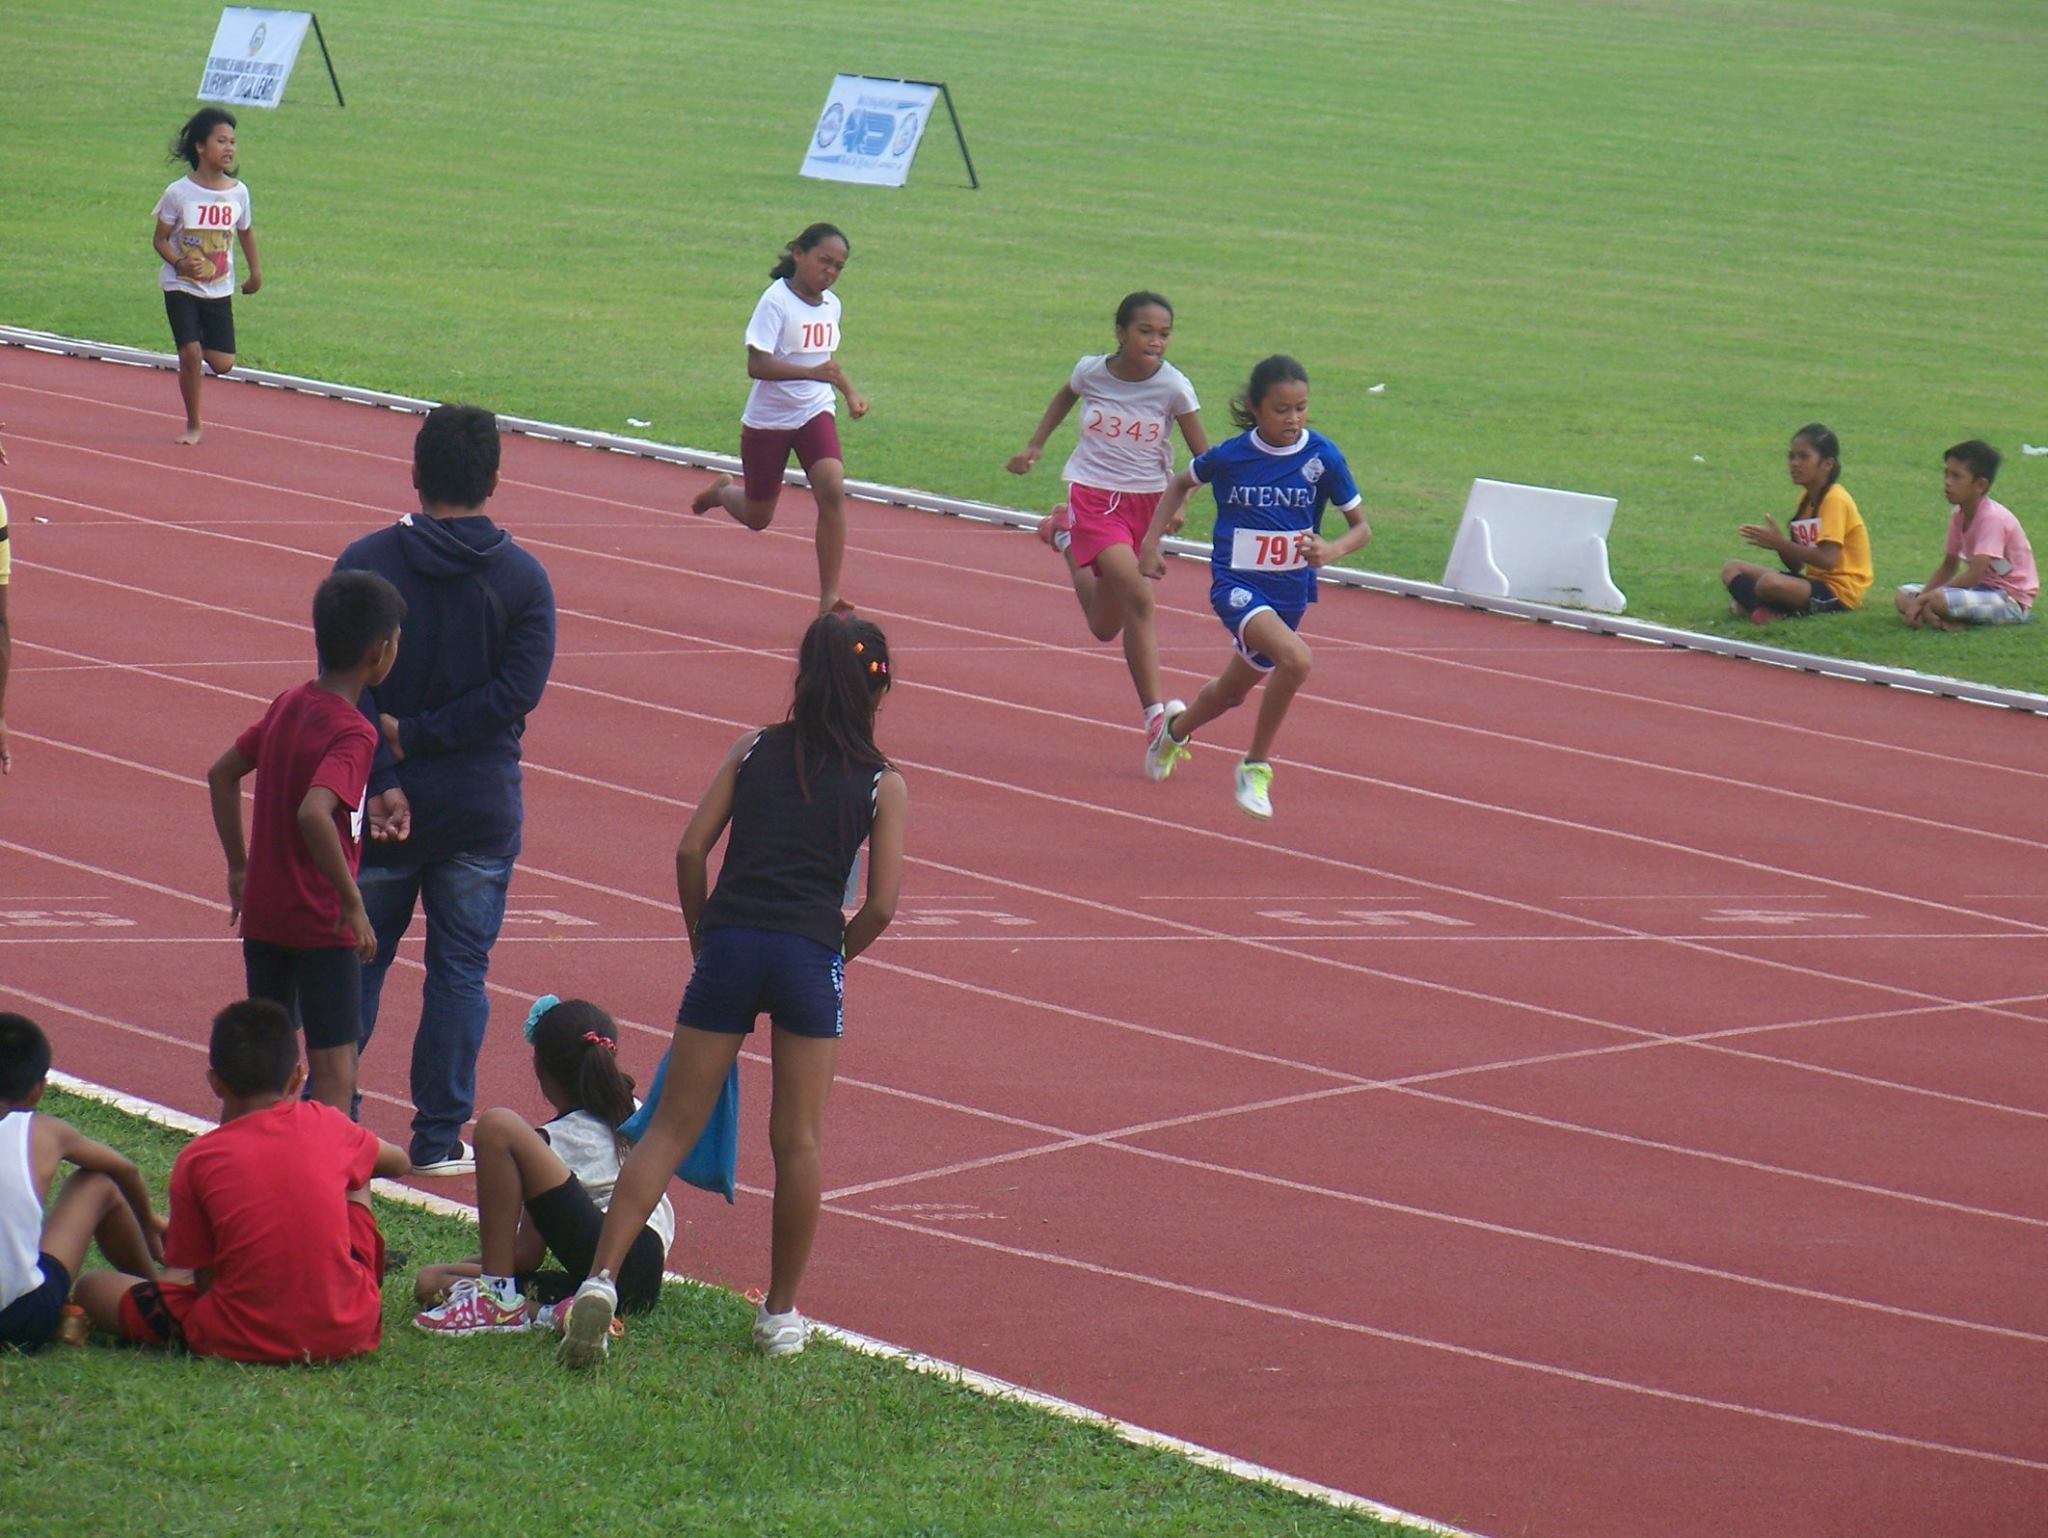 Ateneo de Davao's Ashanttie Kate Amaneo on her final stretch at 100m dash.